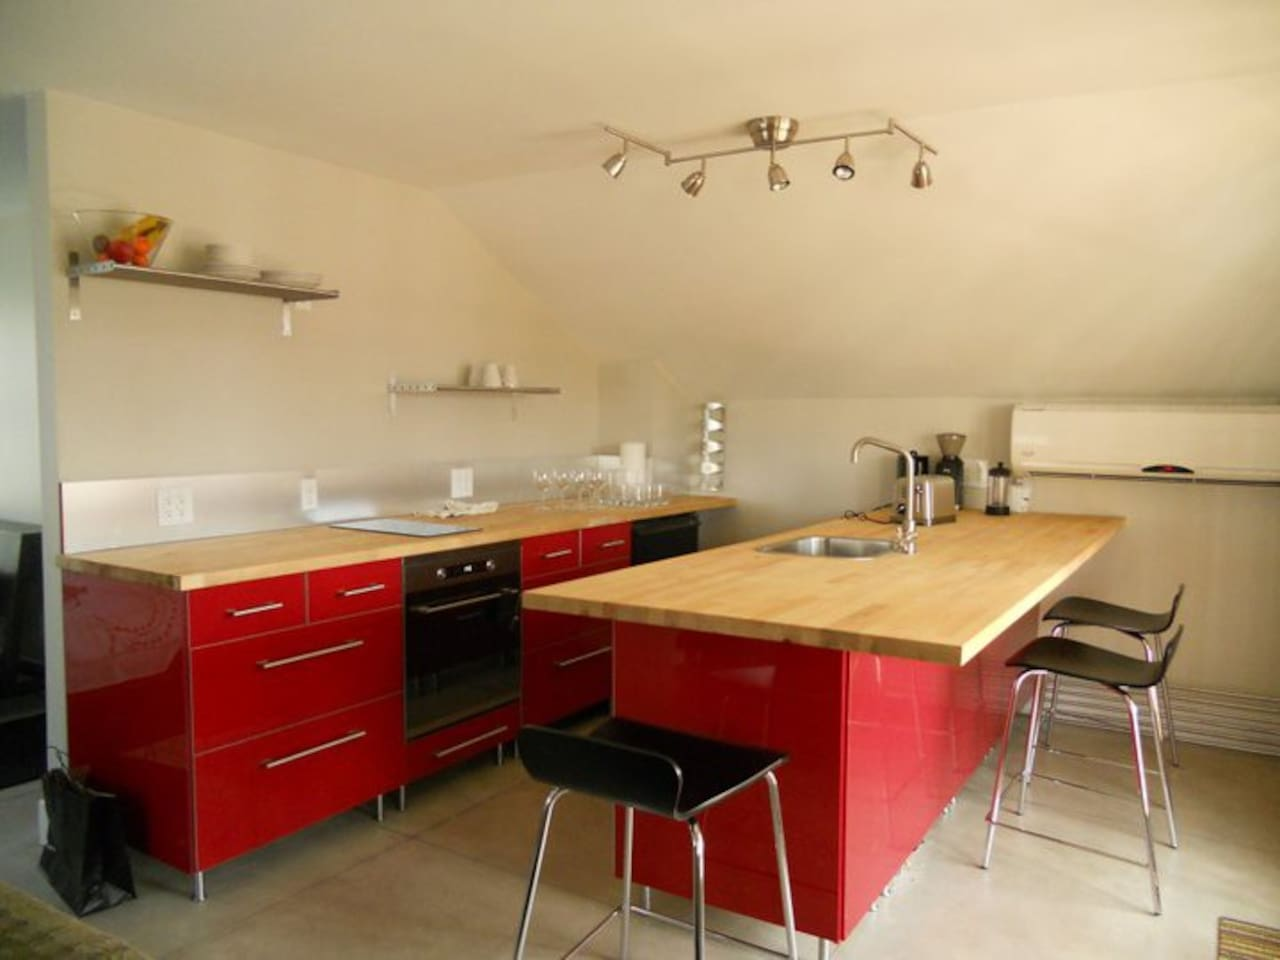 Well appointed stylish IKEA kitchen.